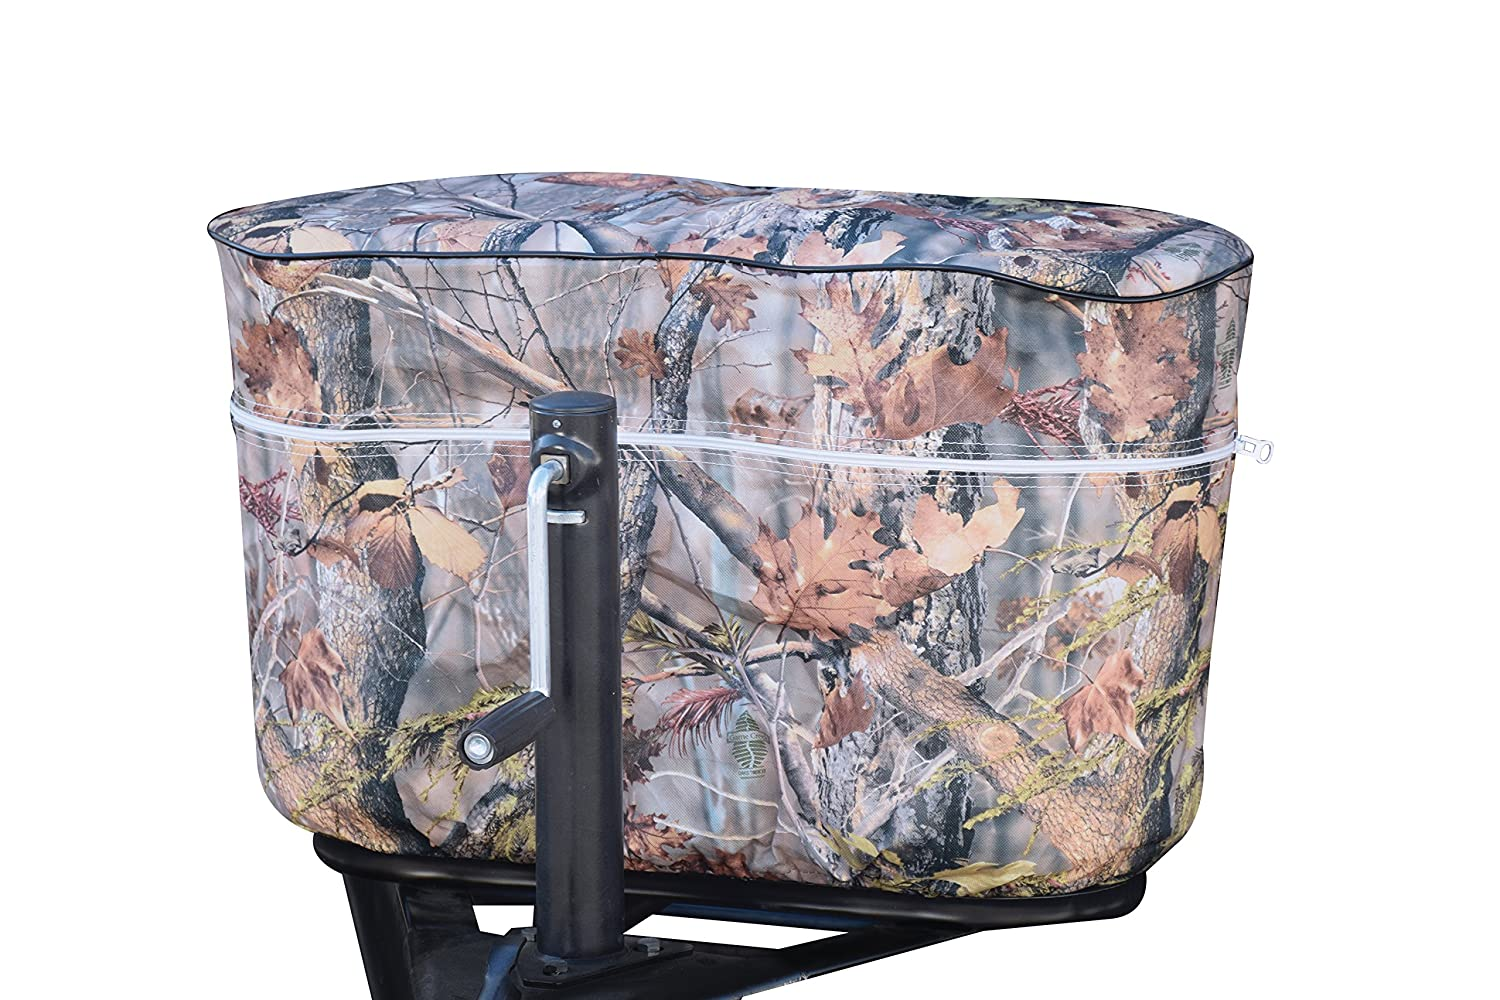 ADCO 2613 Camouflage Double 30 Game Creek Oaks Propane Tank Cover